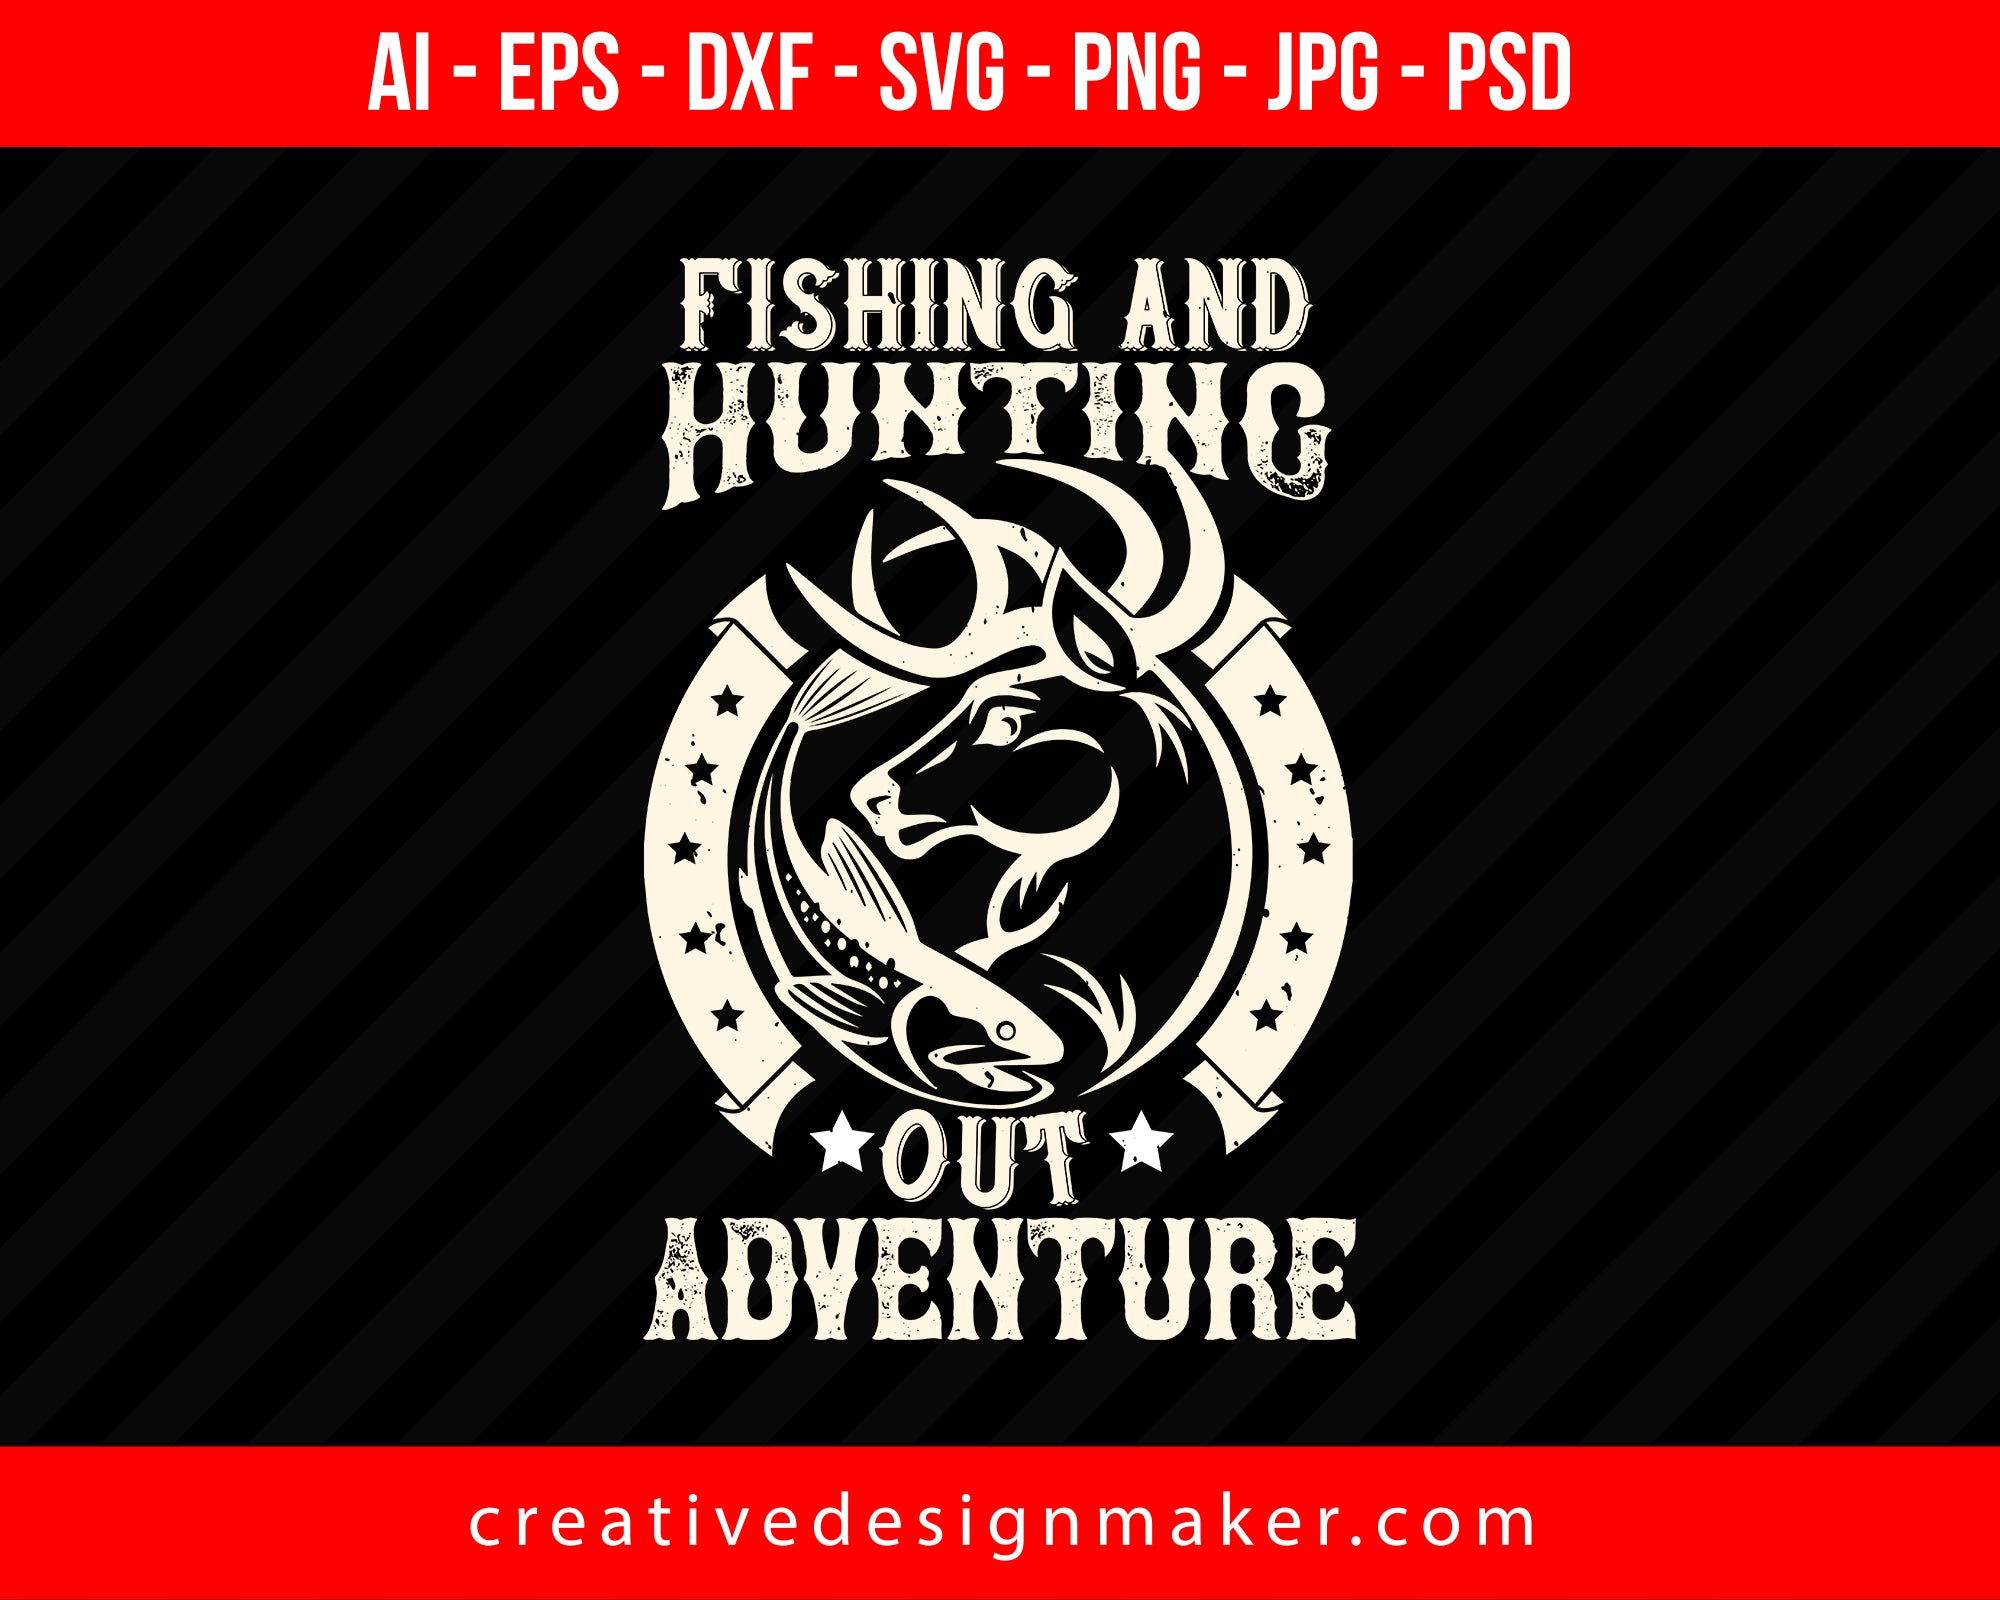 Download Fishing And Hunting Out Adventure Editable T Shirt Svg Design Creativedesignmaker